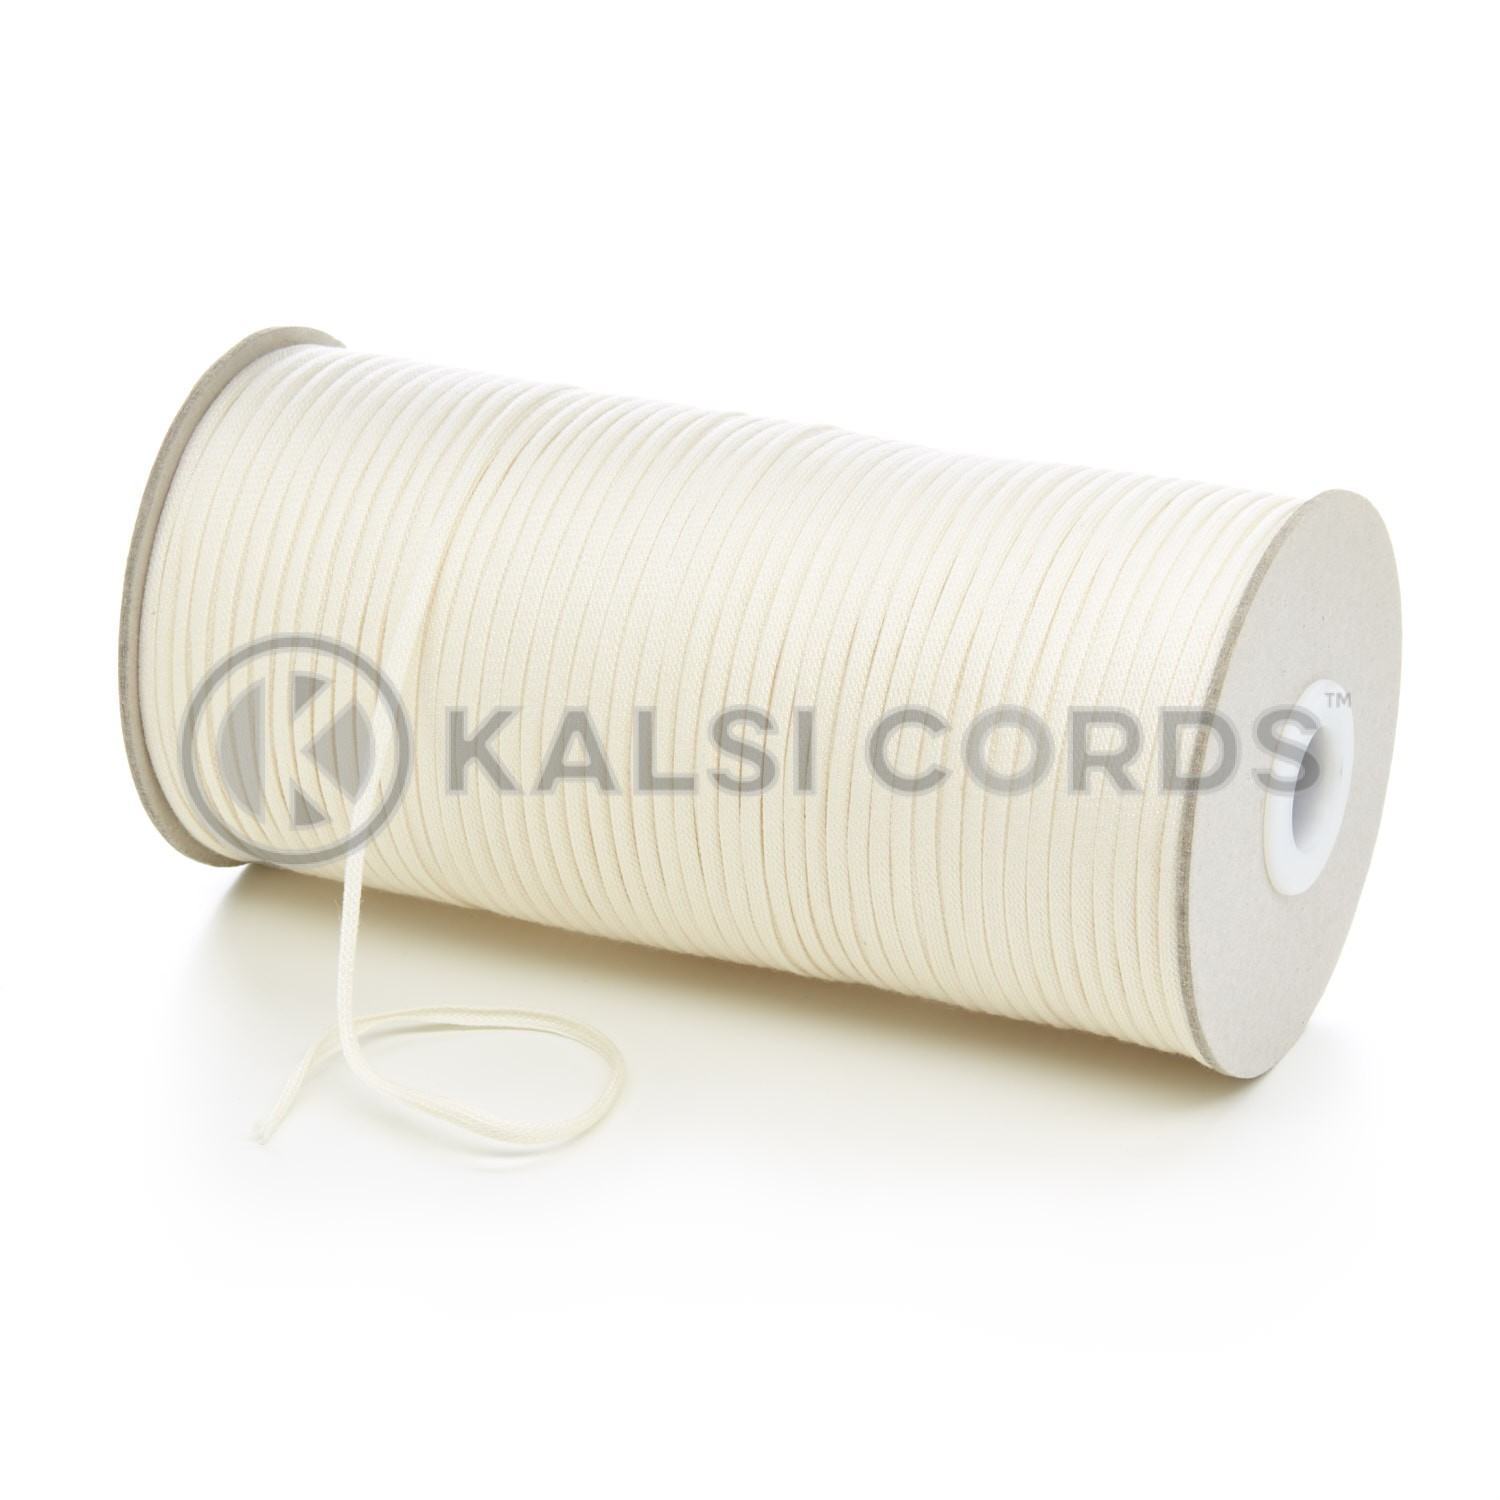 3mm Flat Cotton Braid Tape Cord Binding String Strapping TC14 Kalsi Cords